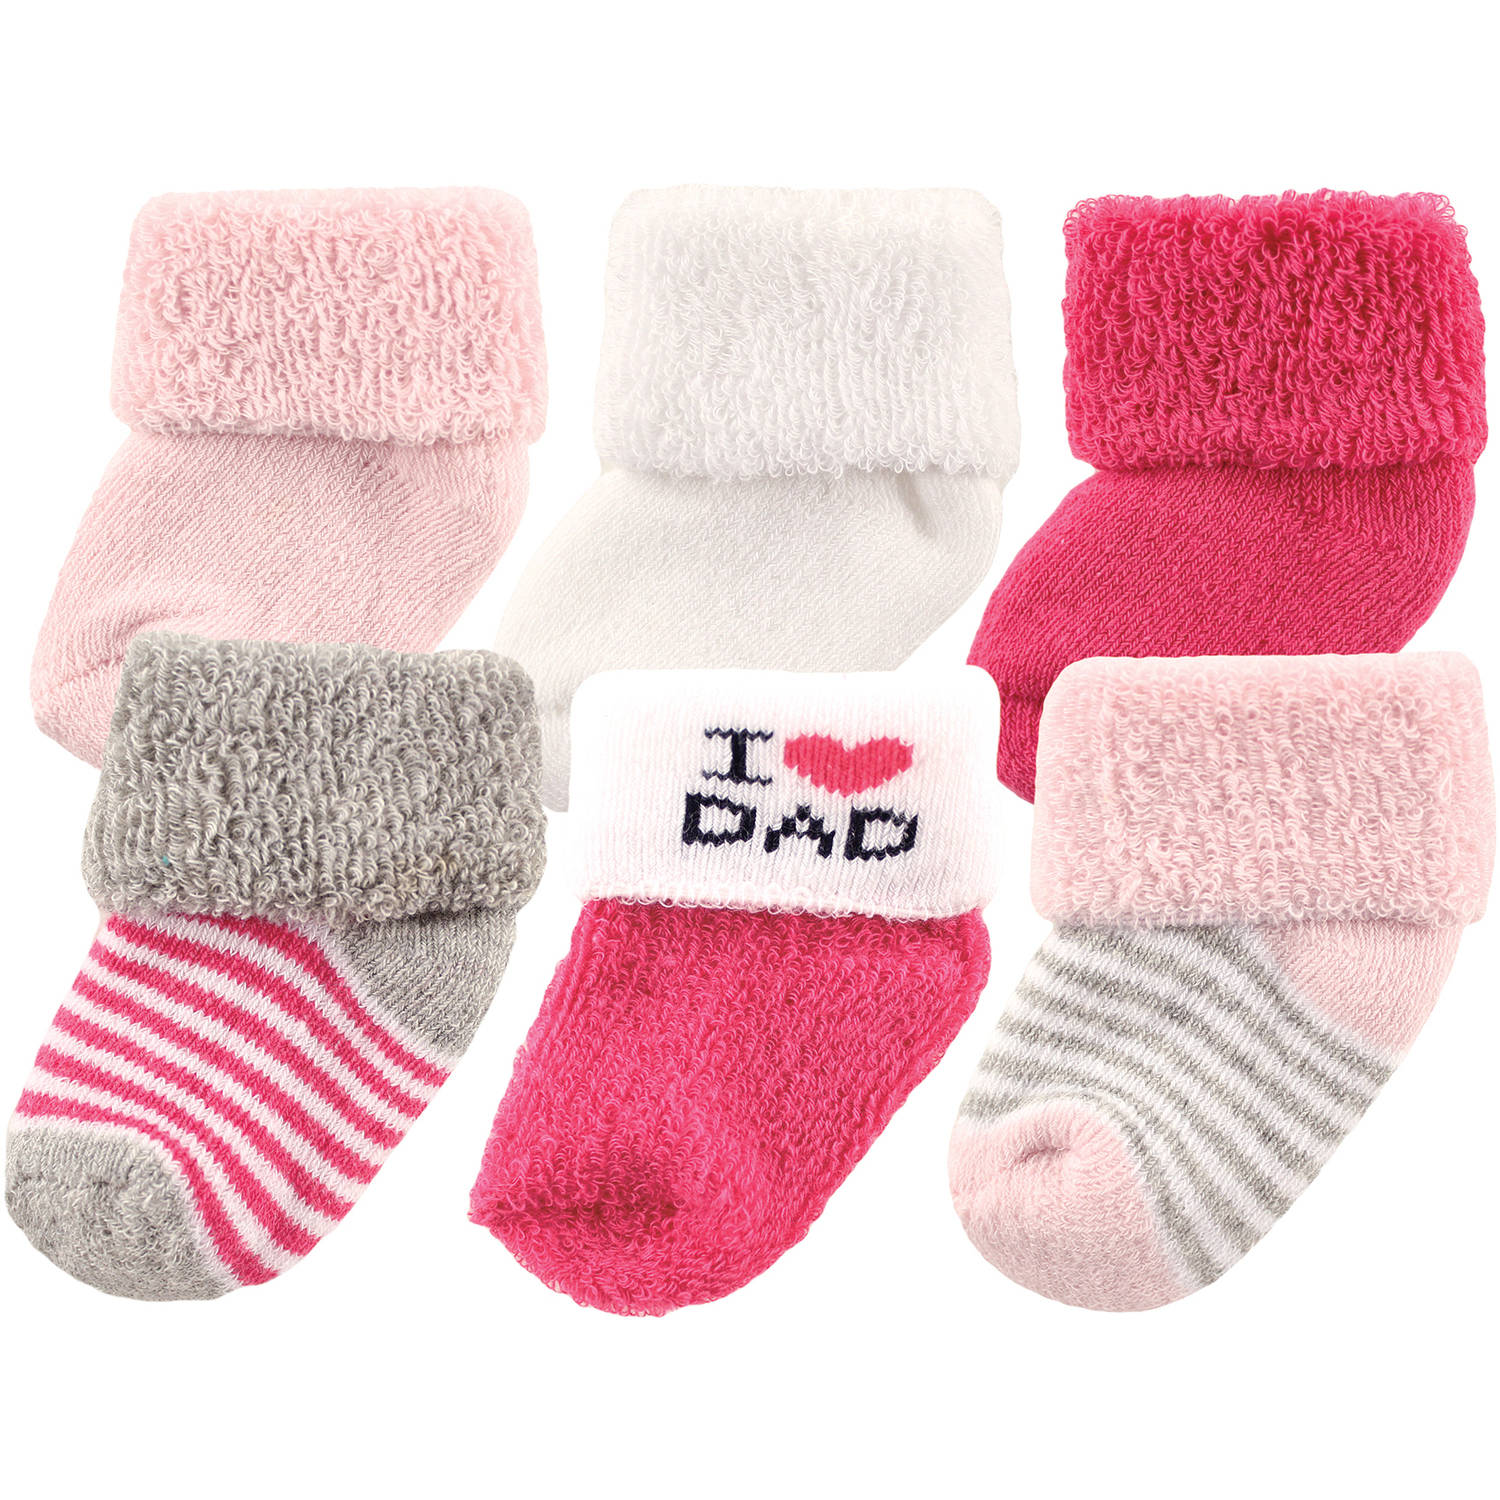 Luvable Friends Newborn Baby Girl Socks 6-Pack